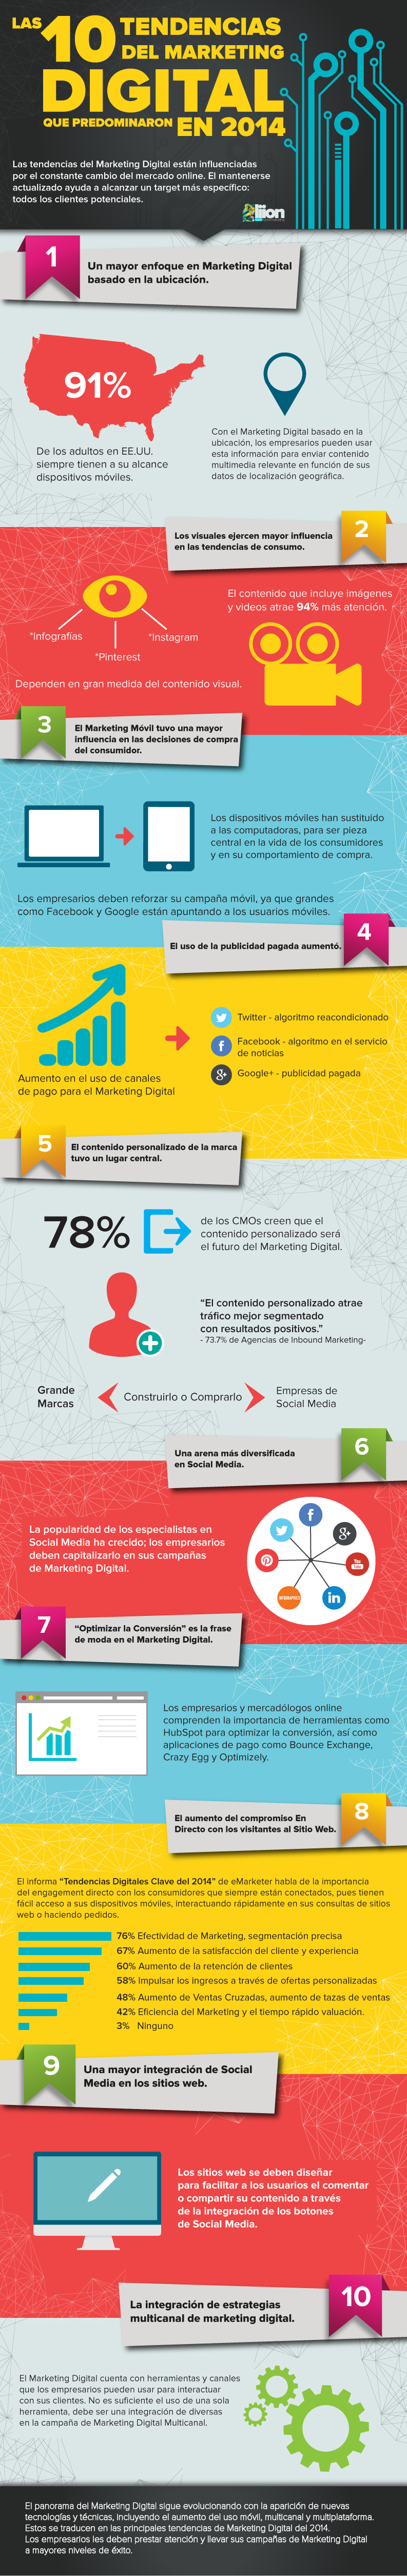 10 tendencias en Marketing Digital que triunfaron en 2014